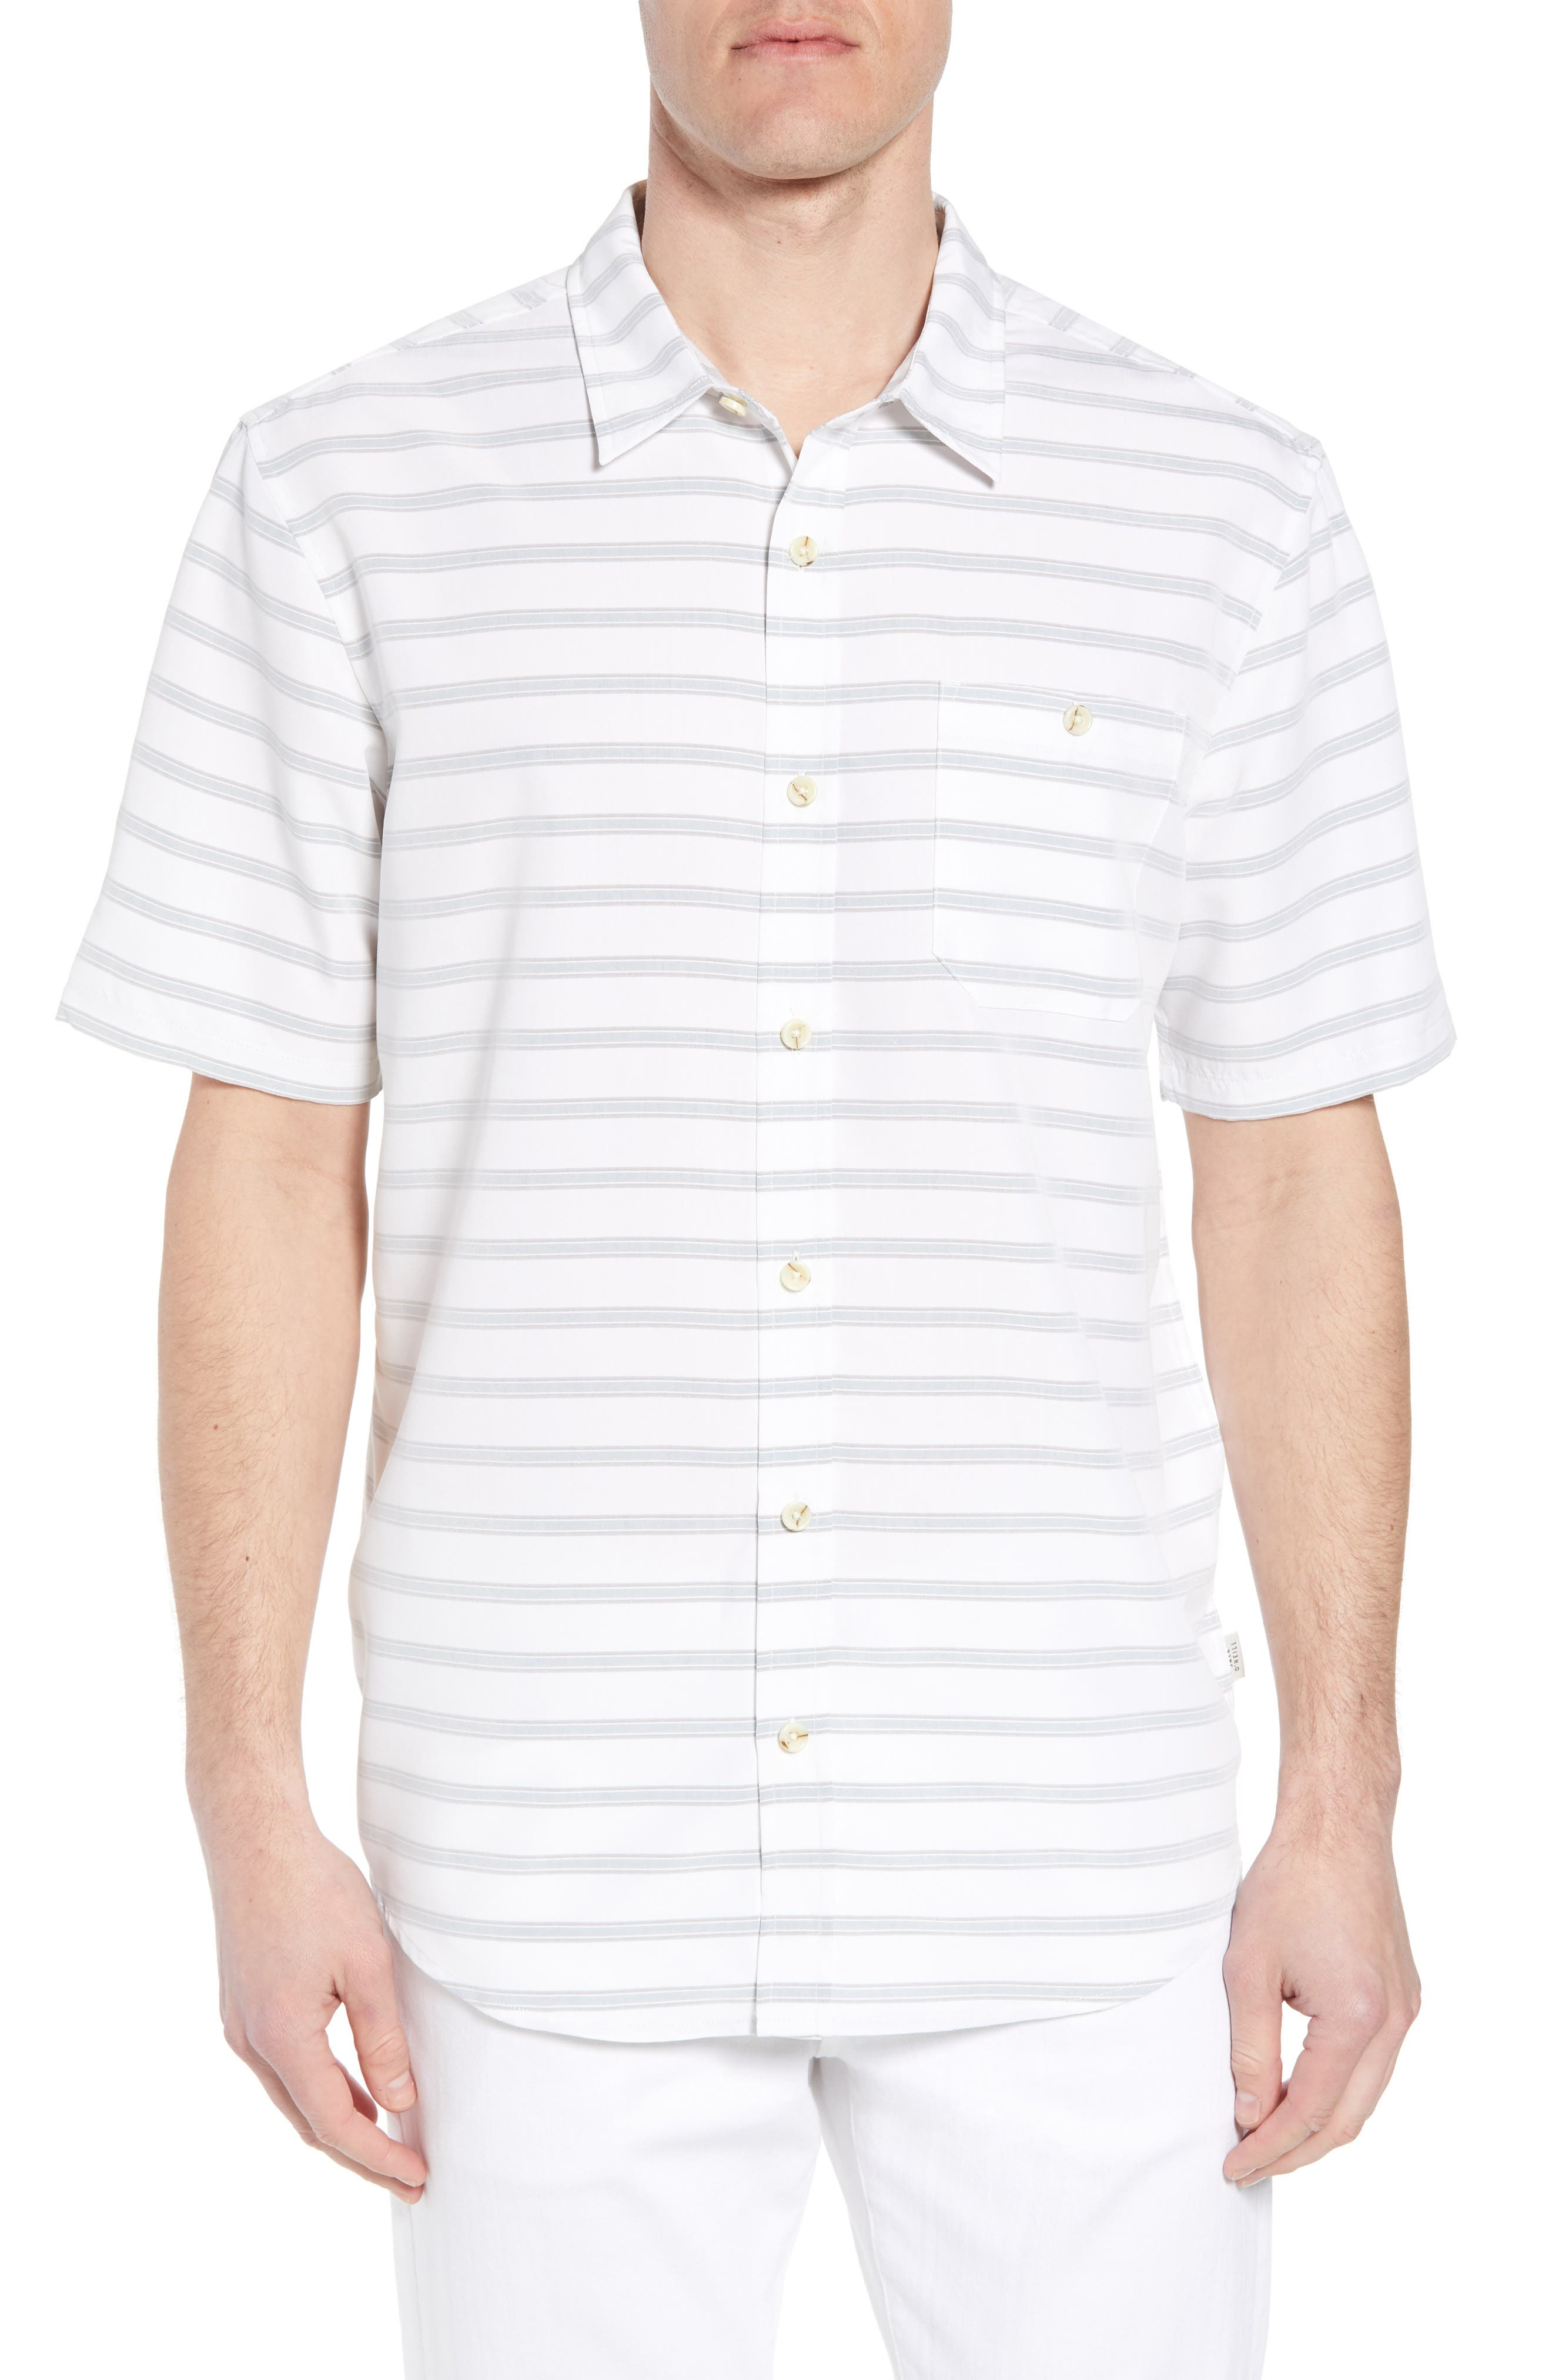 Slow Ride Sport Shirt,                         Main,                         color, White